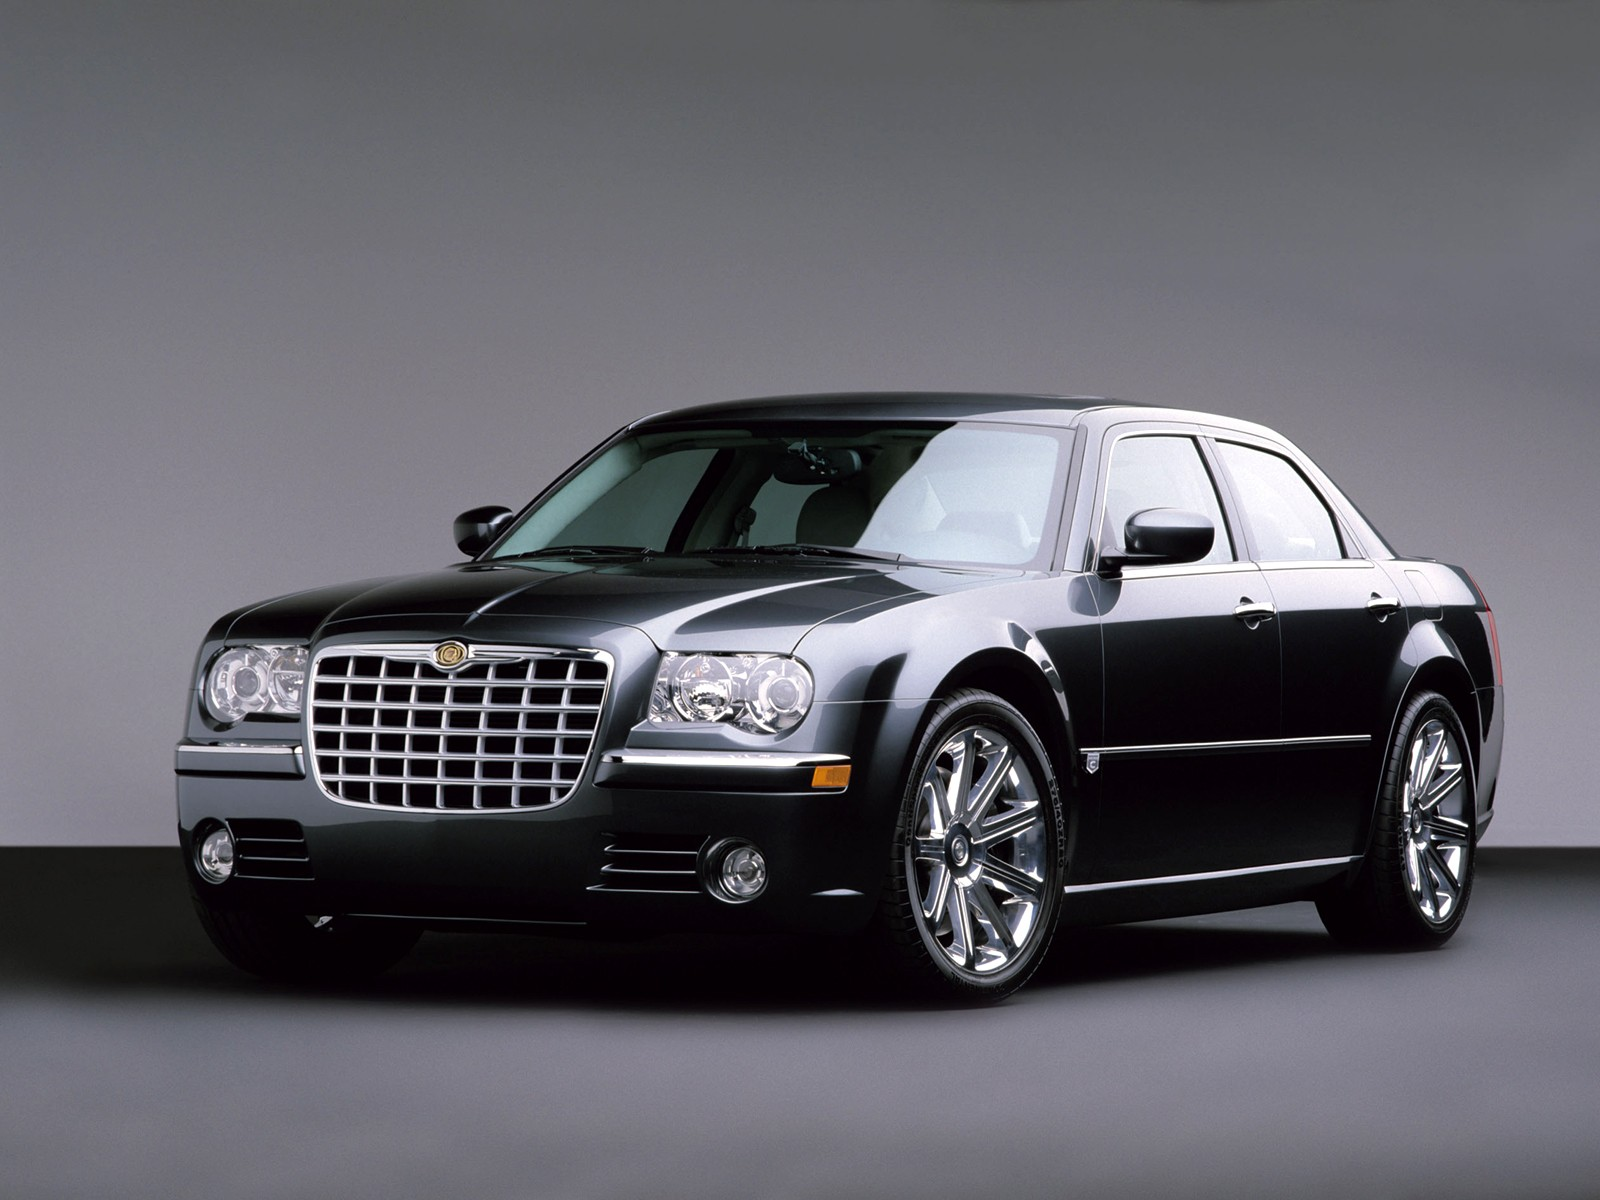 Picture of 2007 Chrysler 300C SRT-8, exterior